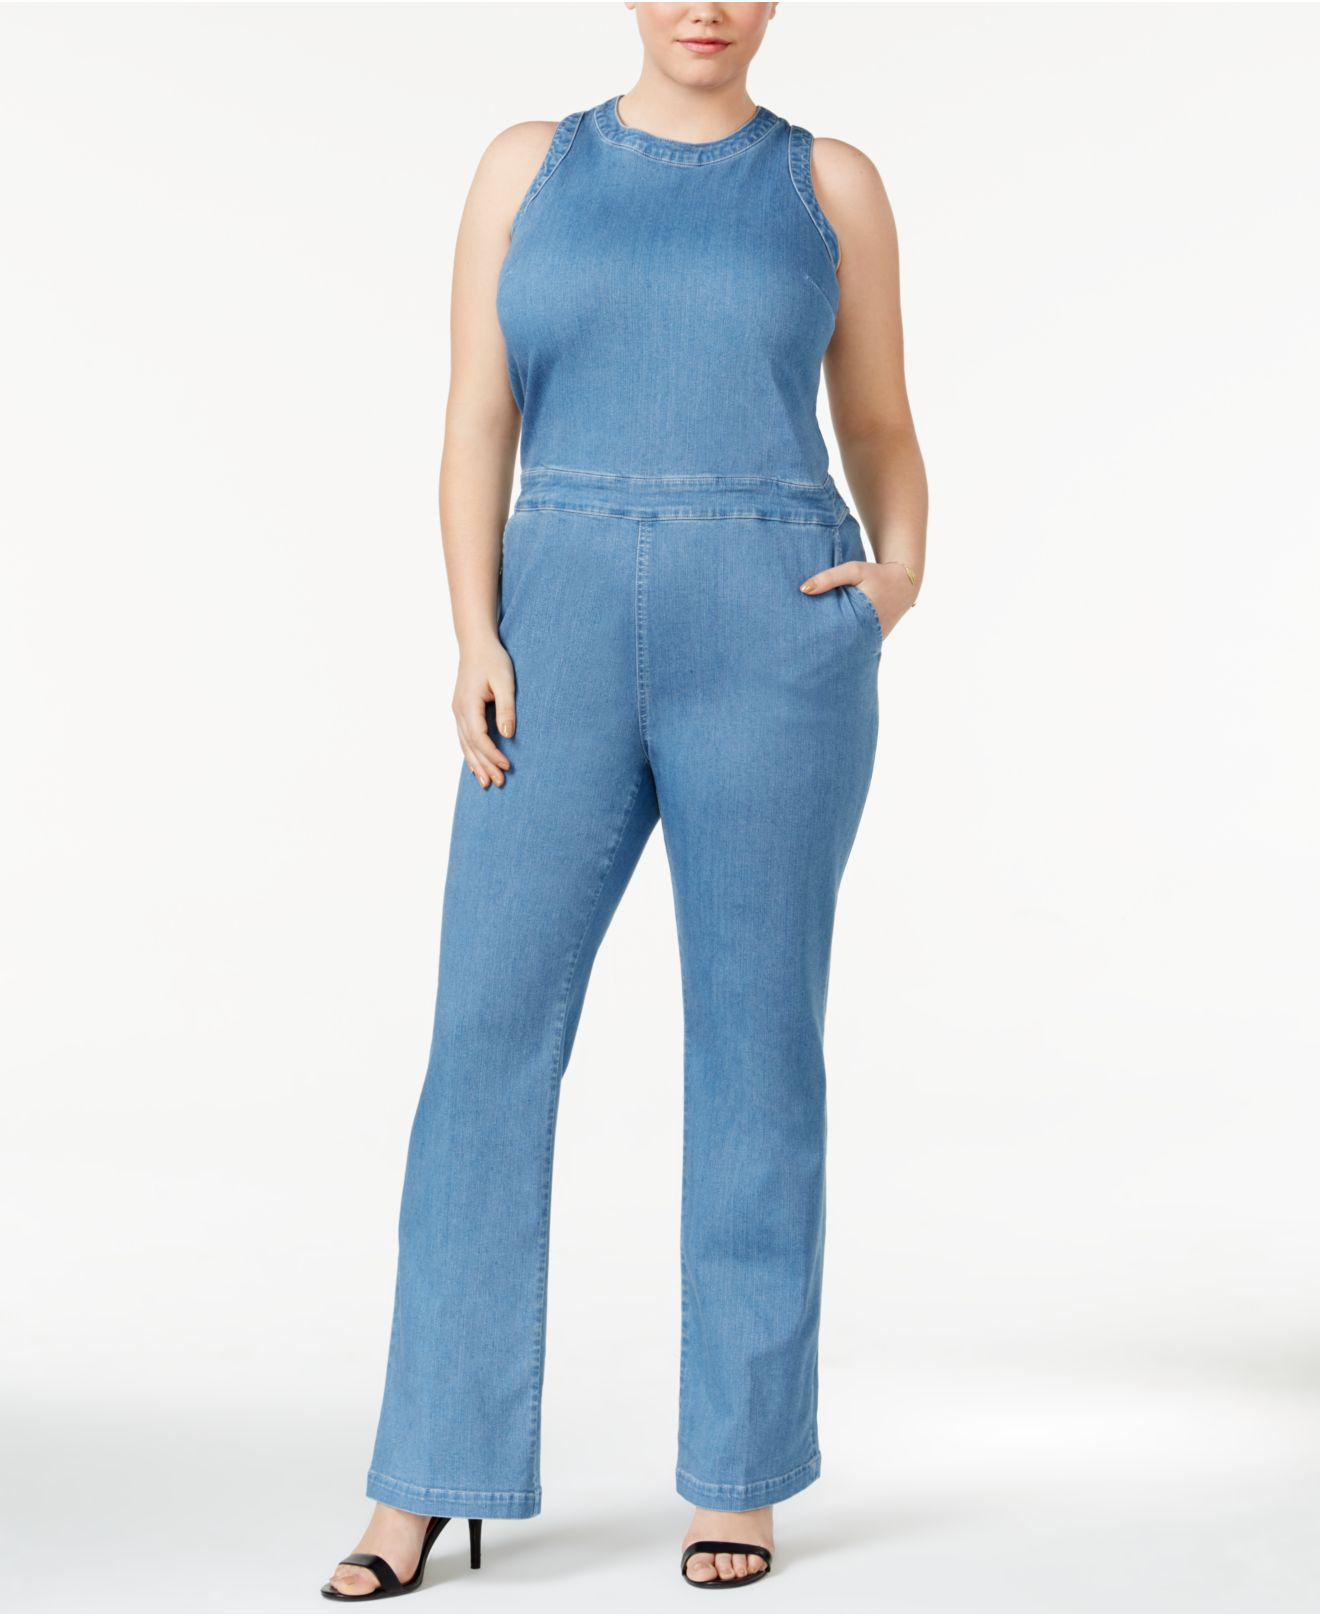 4f63d17b7eea Lyst - RACHEL Rachel Roy Trendy Plus Size Denim Jumpsuit in Blue